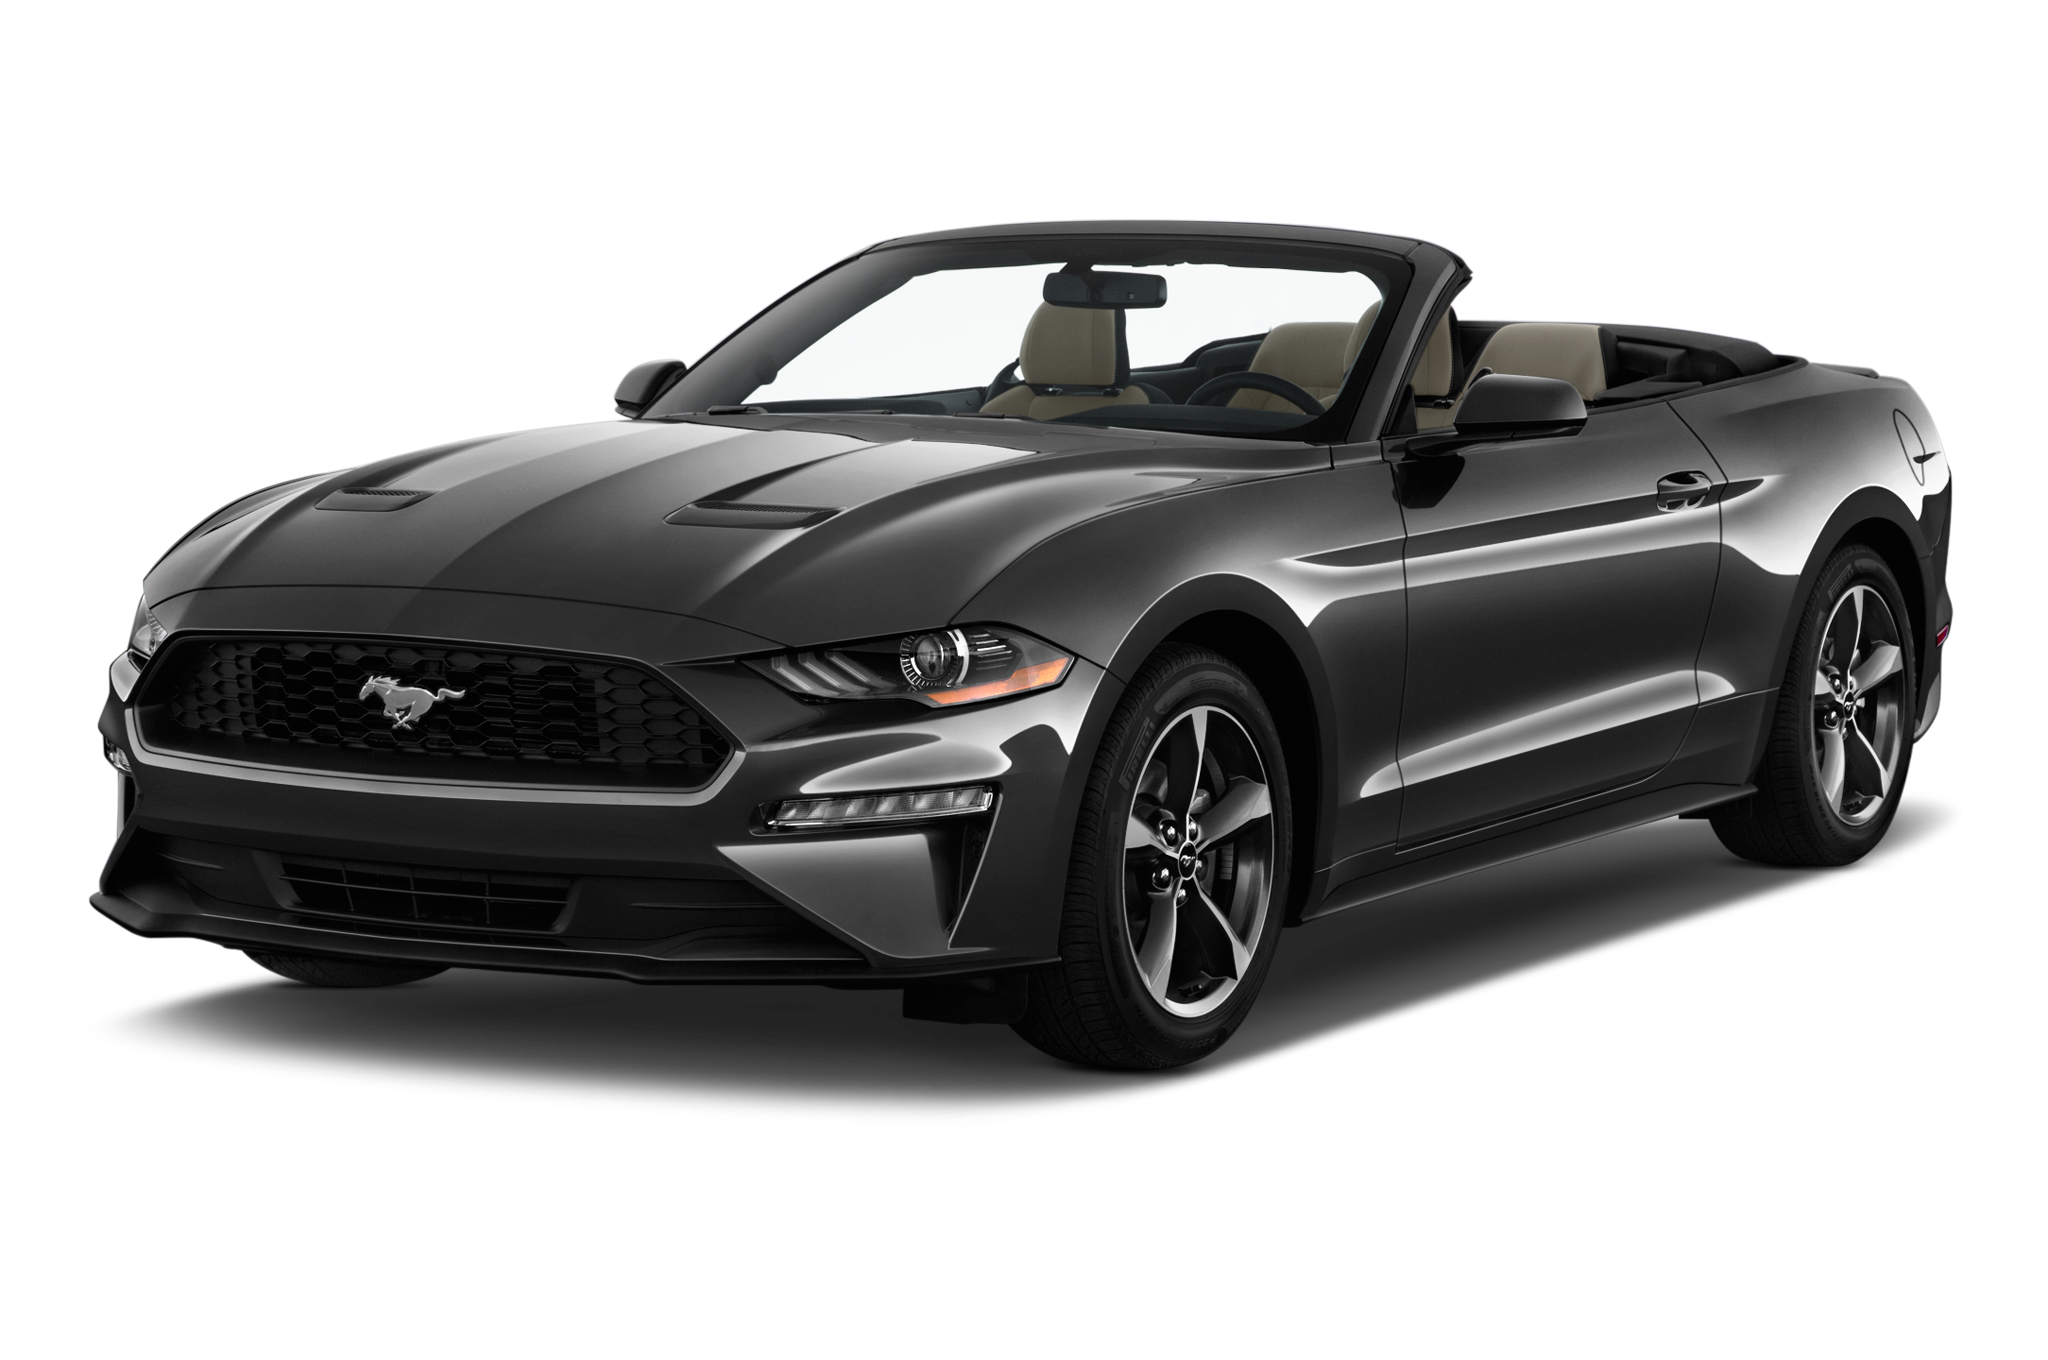 2018 ford mustang ecoboost convertible reviews msn autos. Black Bedroom Furniture Sets. Home Design Ideas